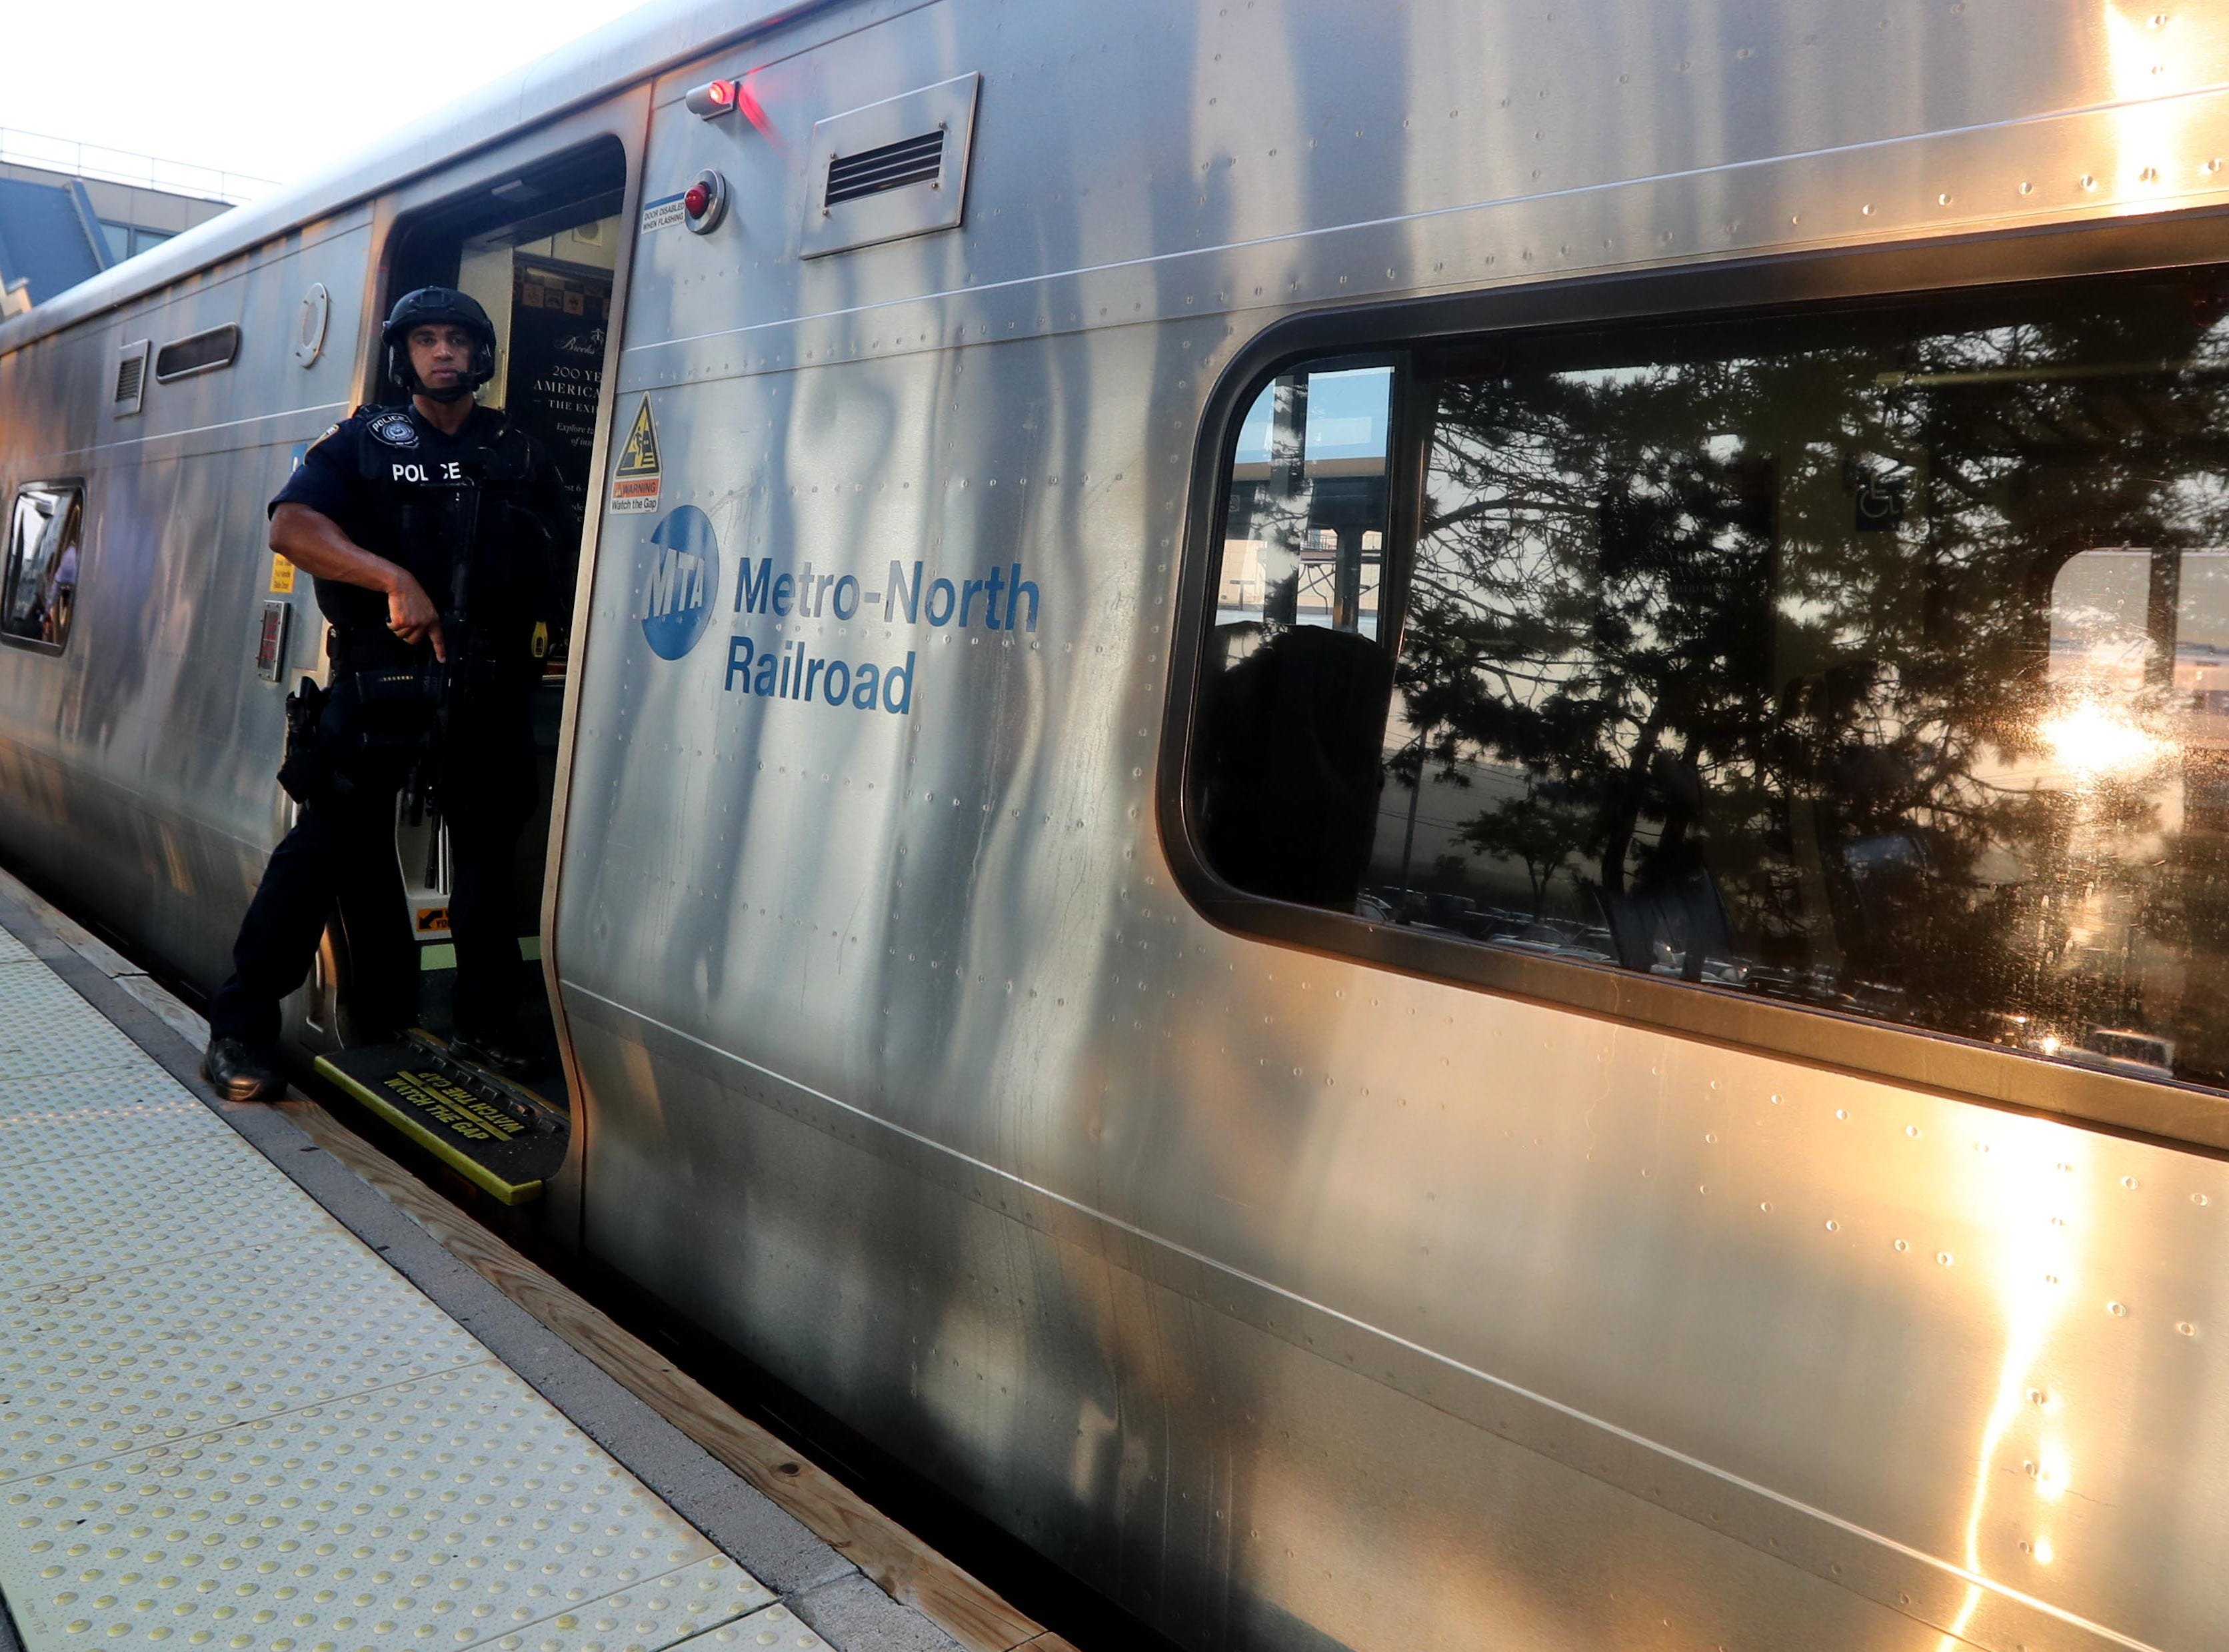 An MTA police officer stands in the entrance of a New York City bound train at the Croton-Harmon station during a multi-department safety drill Aug. 28, 2018. Officers from the MTA, Amtrak, Croton Harmon, New York State Police, TSA, and Department of Homeland Security departments took part in the drill during the morning rush hour. The drill involved heightened platform patrols, increased security presence onboard trains, explosives detection canine sweeps, and counter-surveillance measures. Similar drills were also held at several other Hudson Line stations during the morning commute.